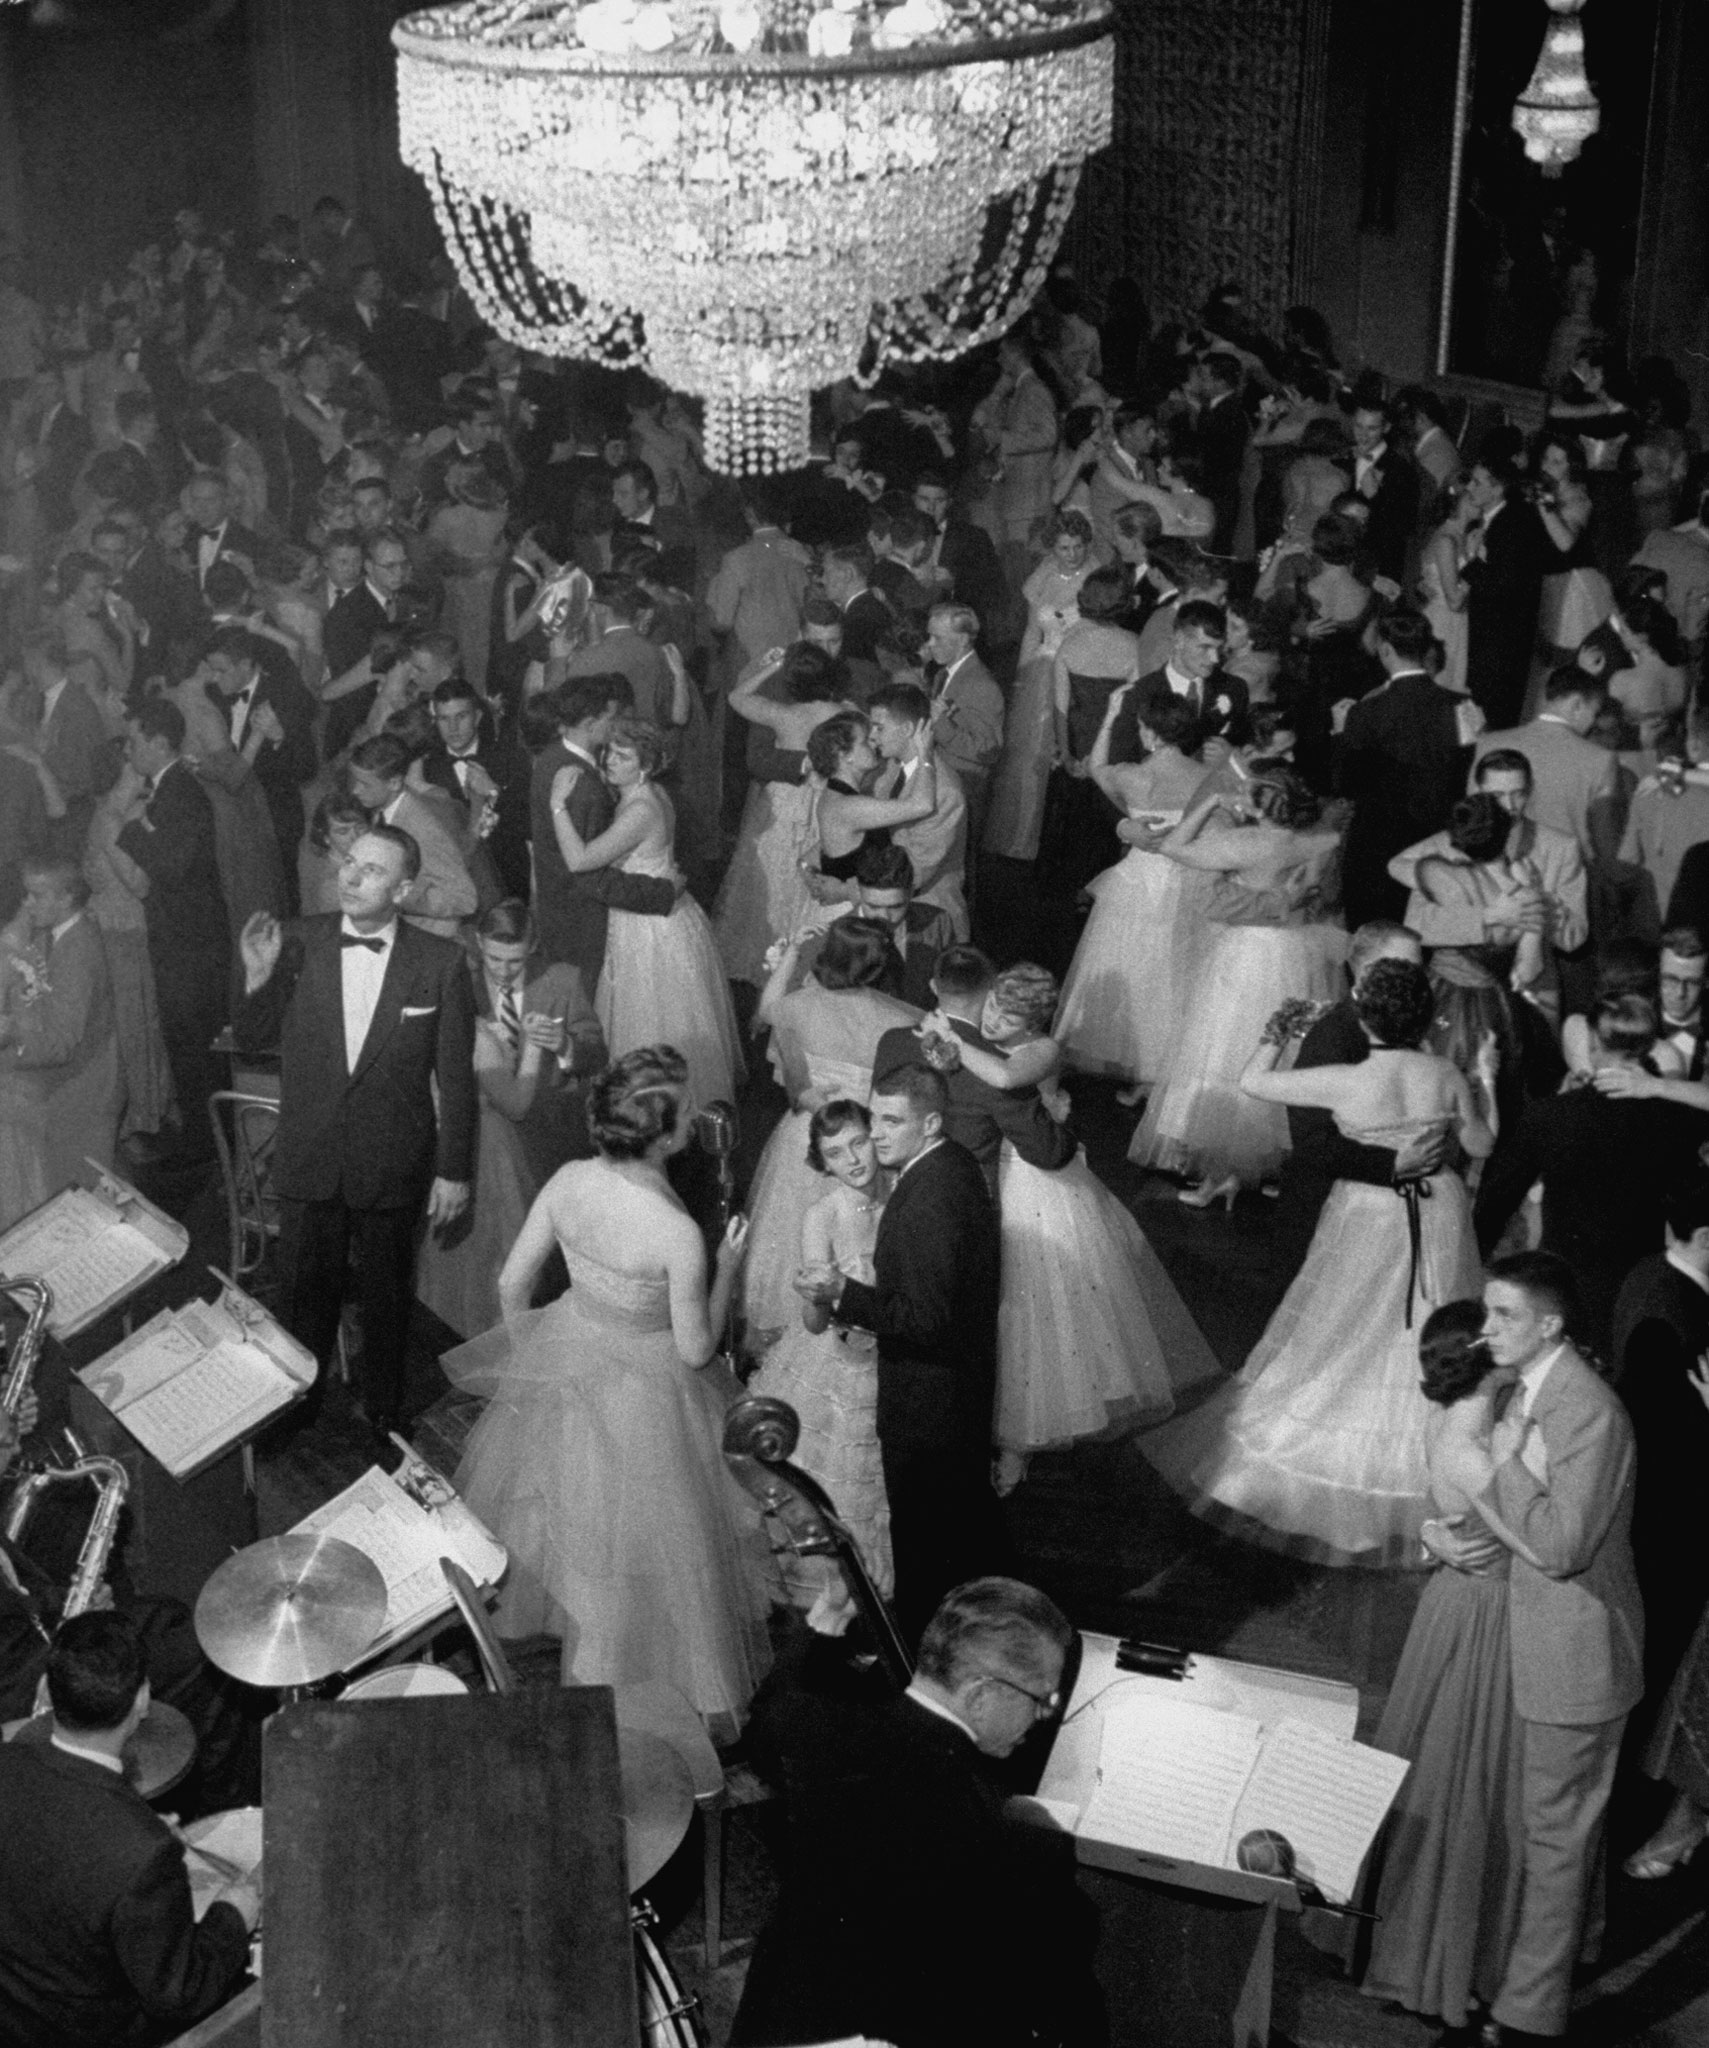 <b>Caption from LIFE.</b> Young couples at formal dance dreamily swaying on crowded floor of dim, chandelier-lit ballroom.